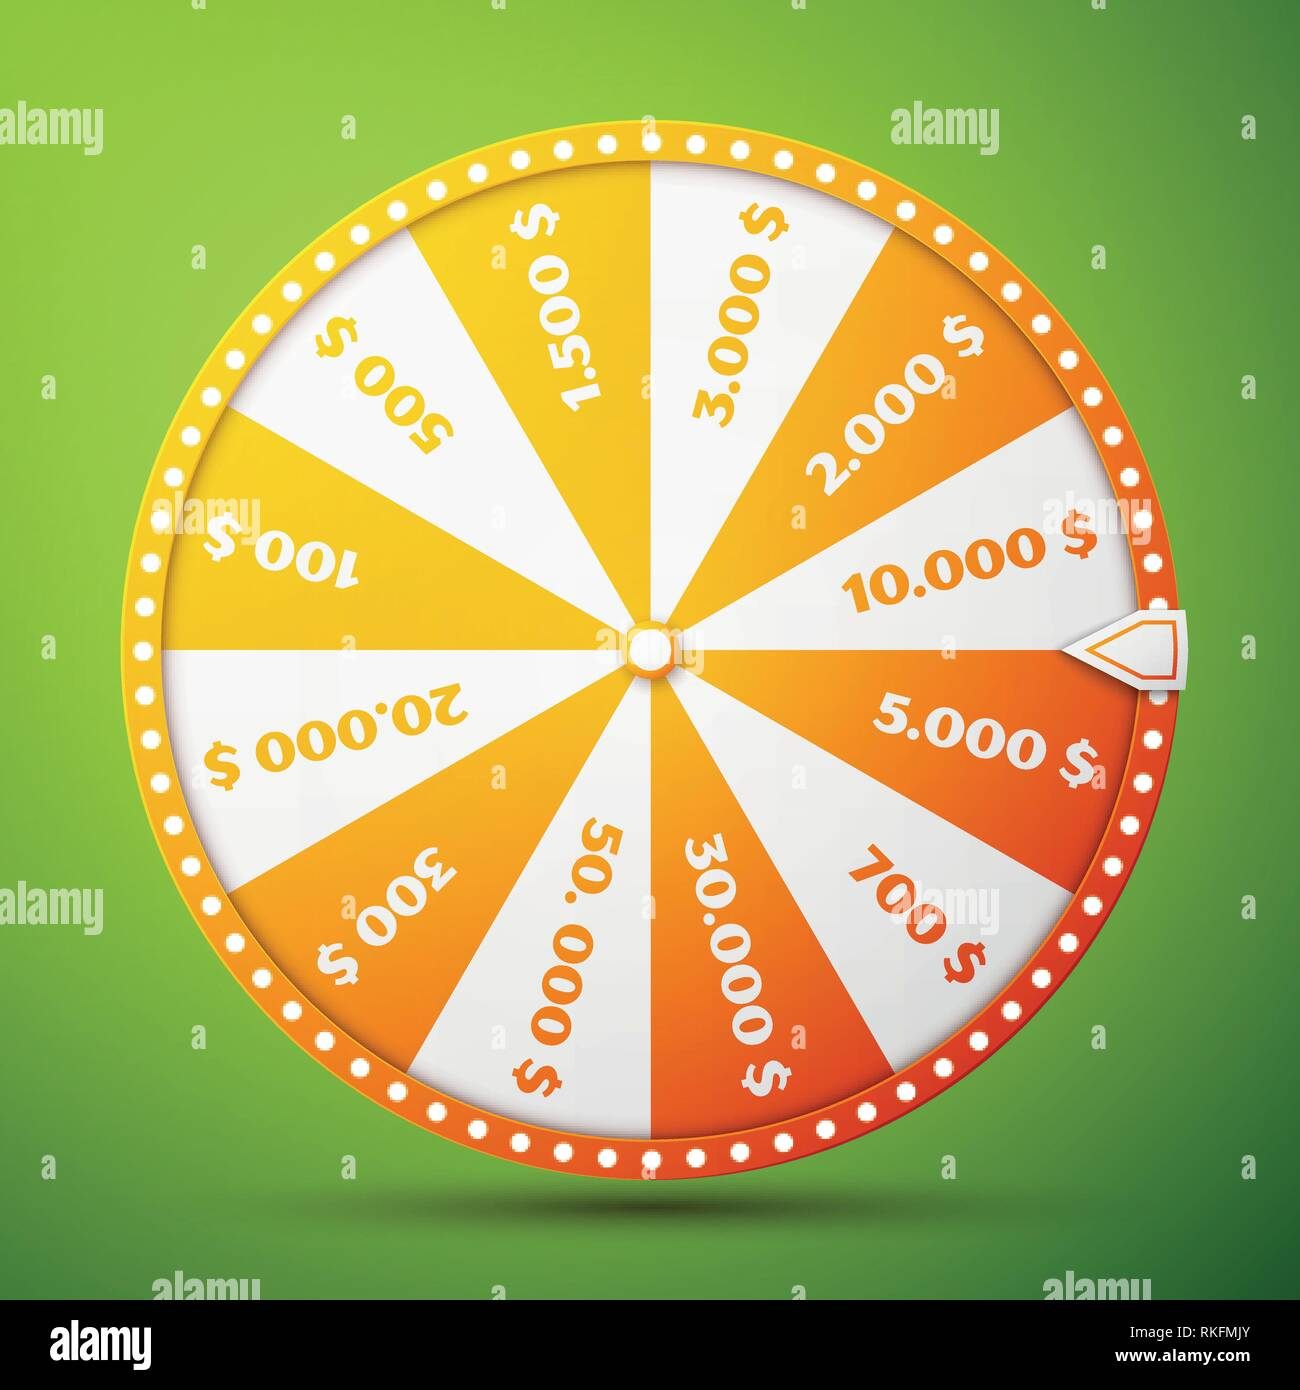 Colorful fortune wheel design. Realistic wheel of fortune illustration, isolated on green background. Vector illustration, EPS 10 Stock Vector